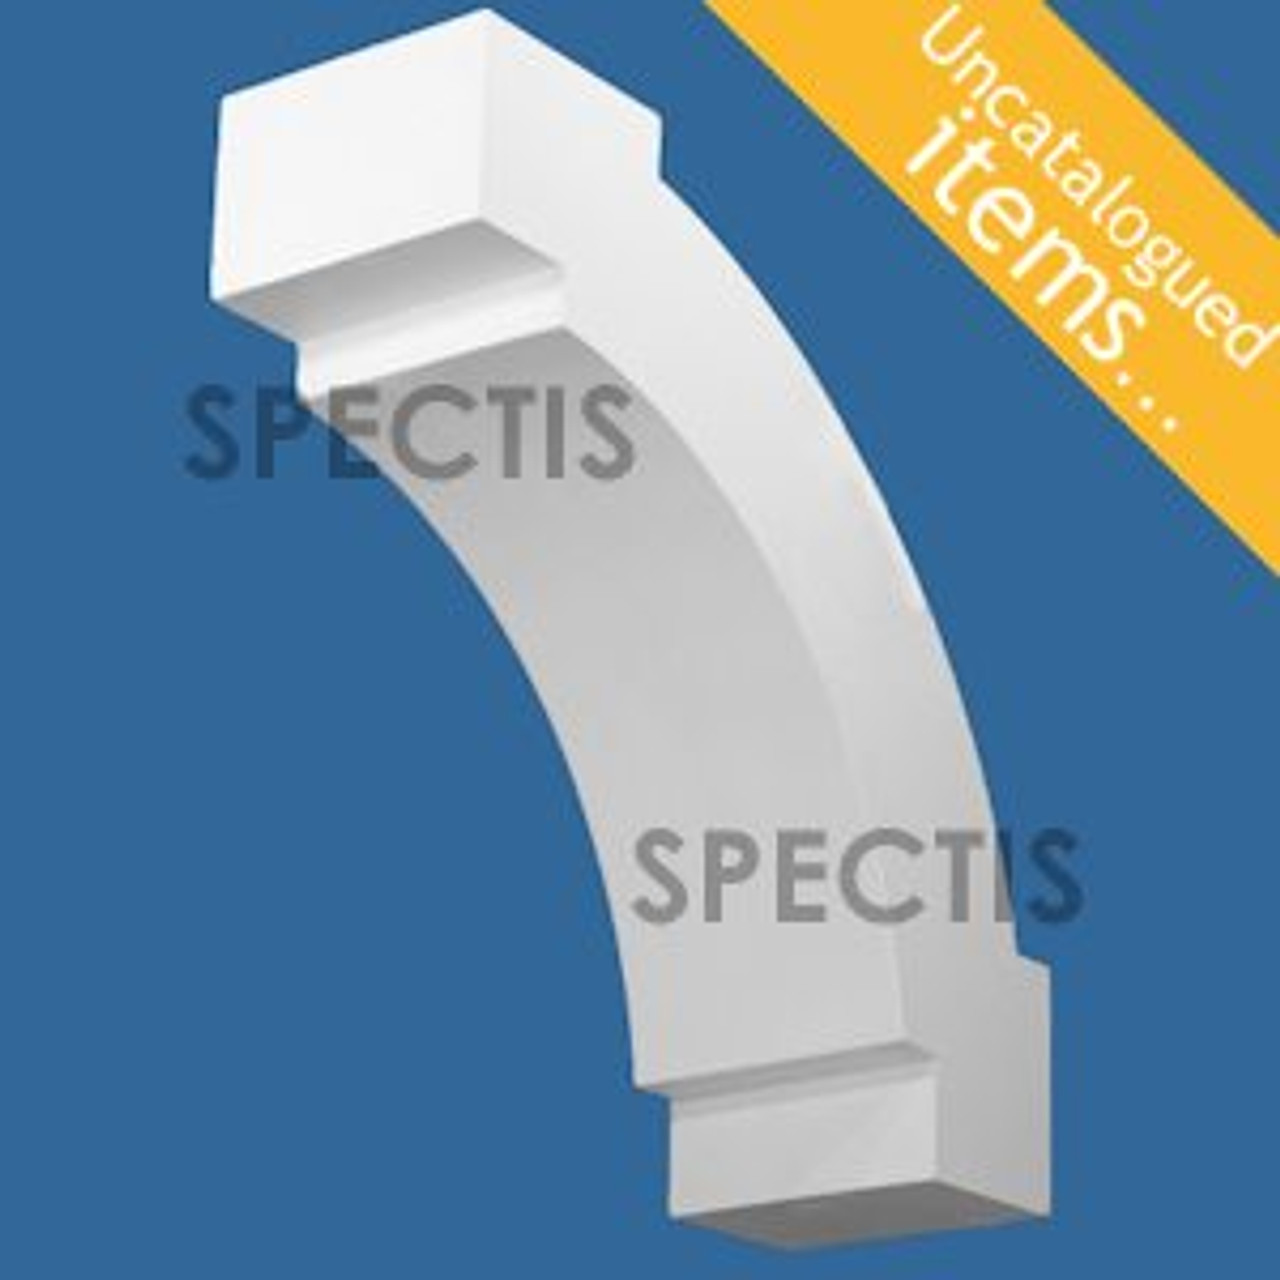 "BL3030 Spectis Eave Block or Bracket 5""W x 14.5""H x 14.5"" Projection"